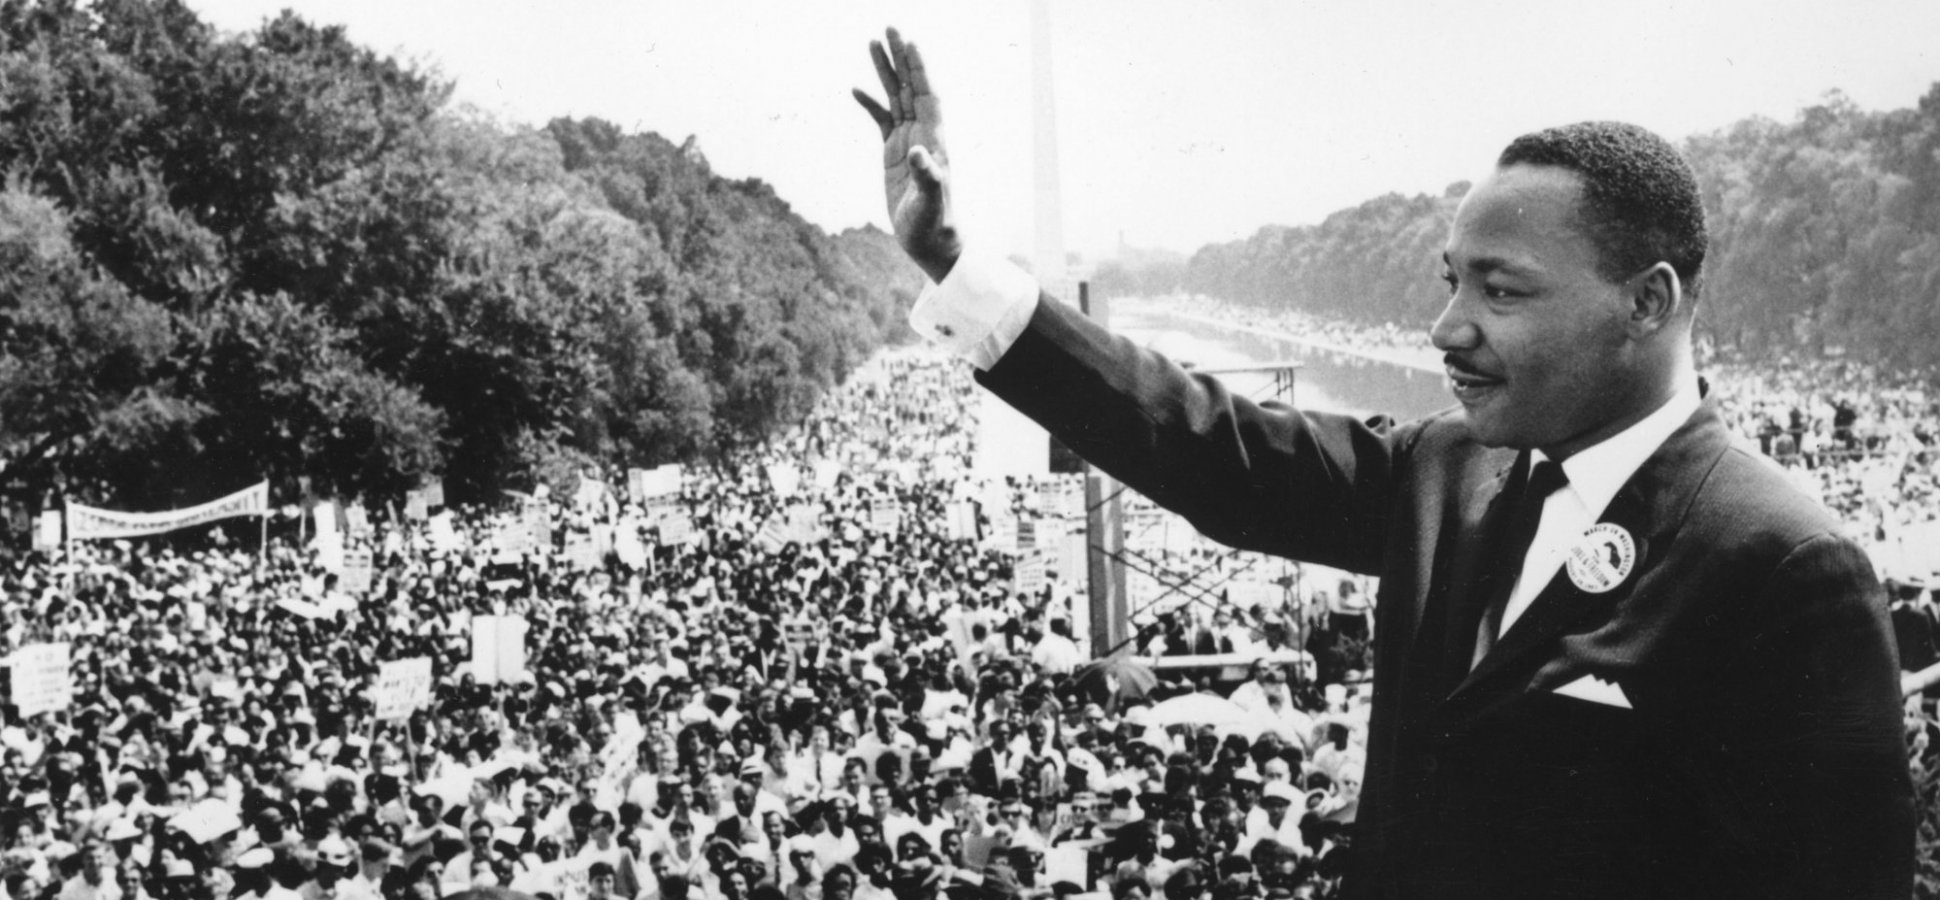 7 Inspirational Speeches From Martin Luther King Jr. That Aren't 'I Have a Dream'